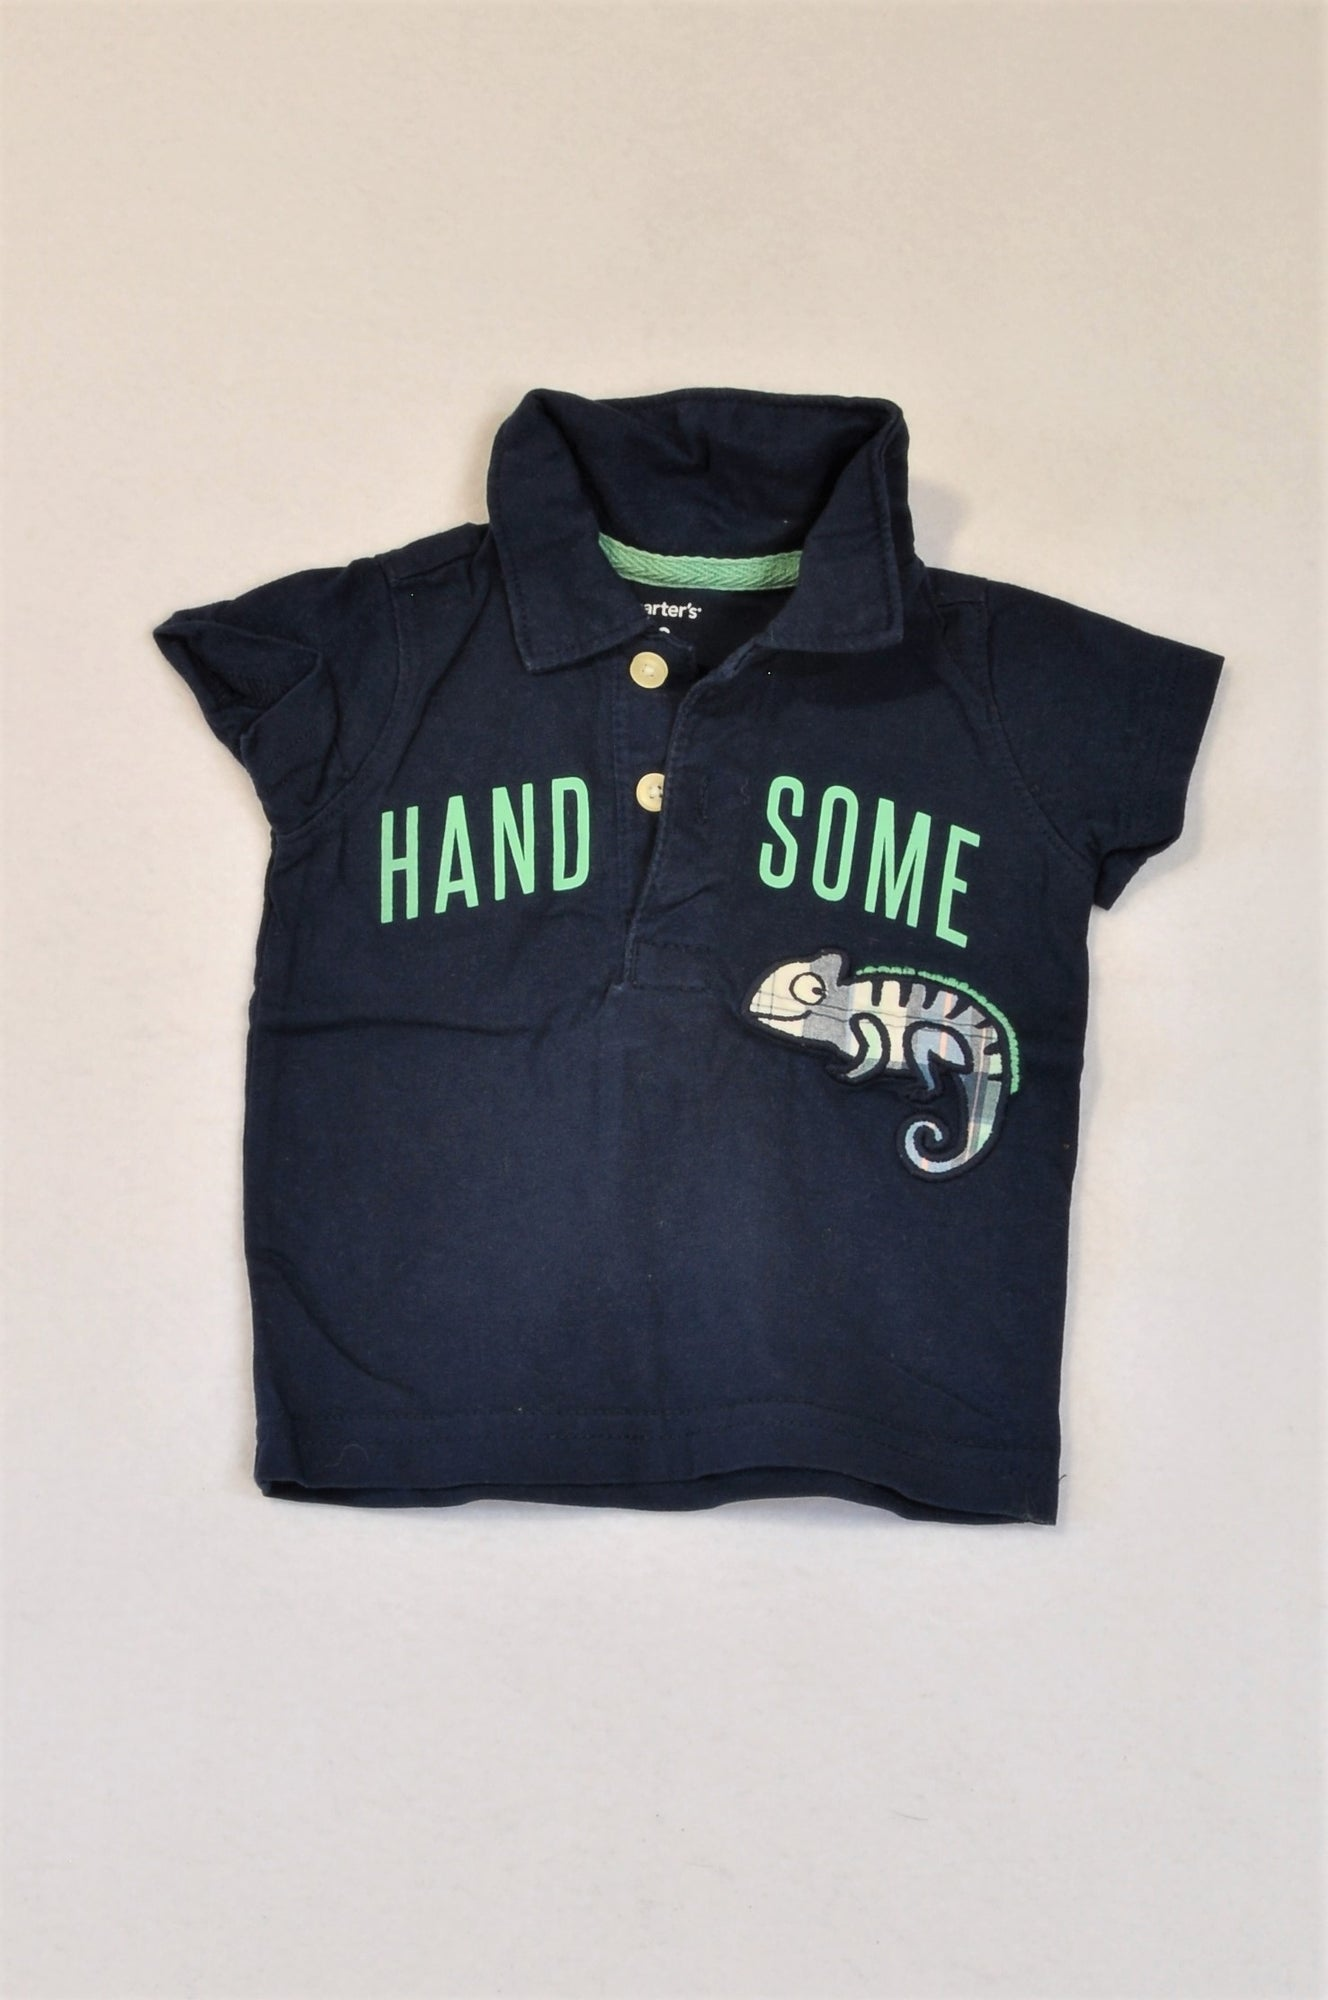 Carter's Navy Handsome Chameleon Golf T-shirt Boys 0-3 months